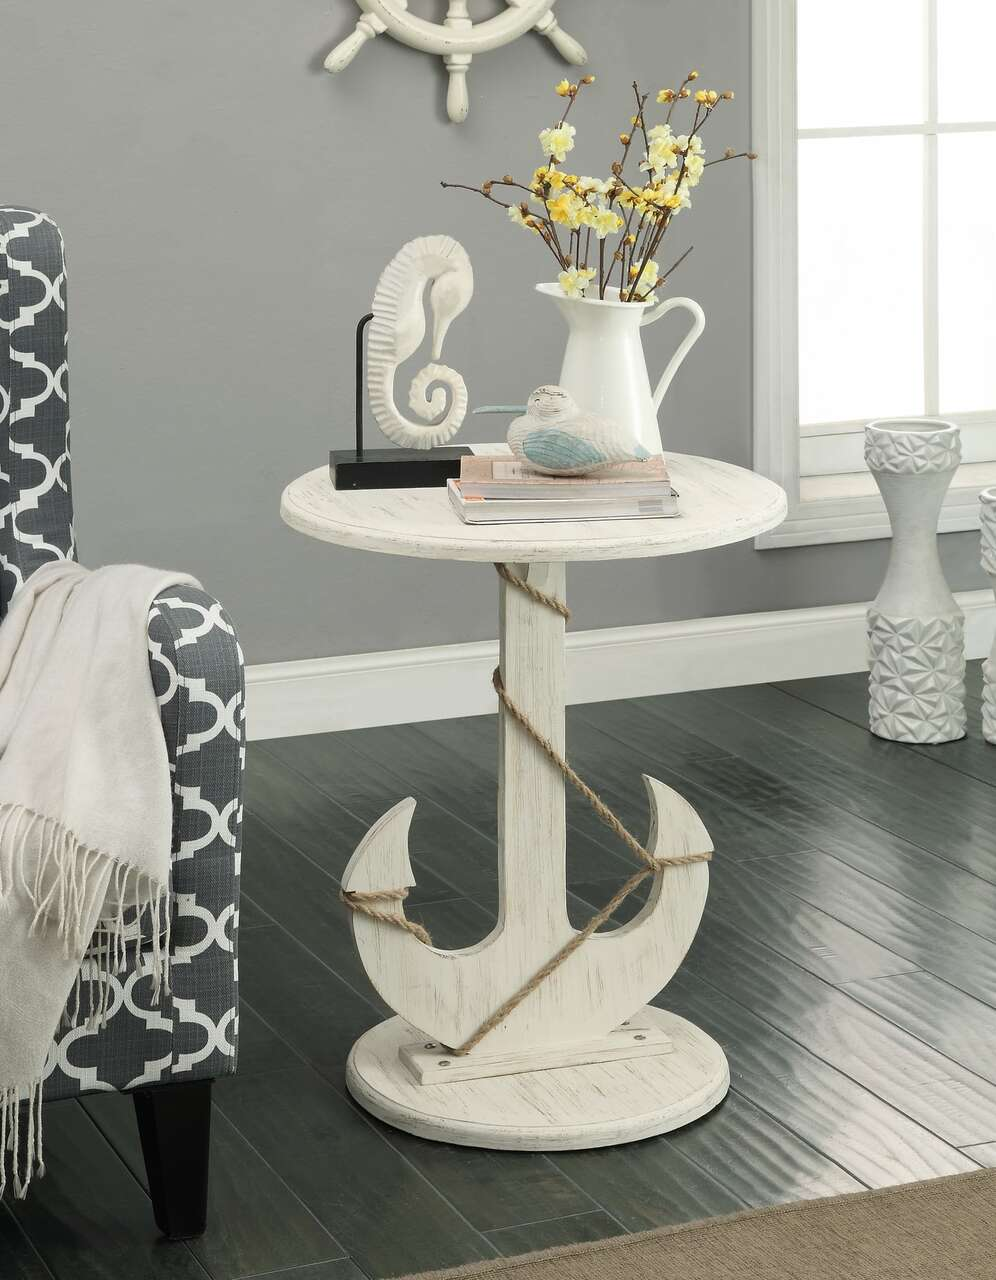 Anchor and Rope Accent Table